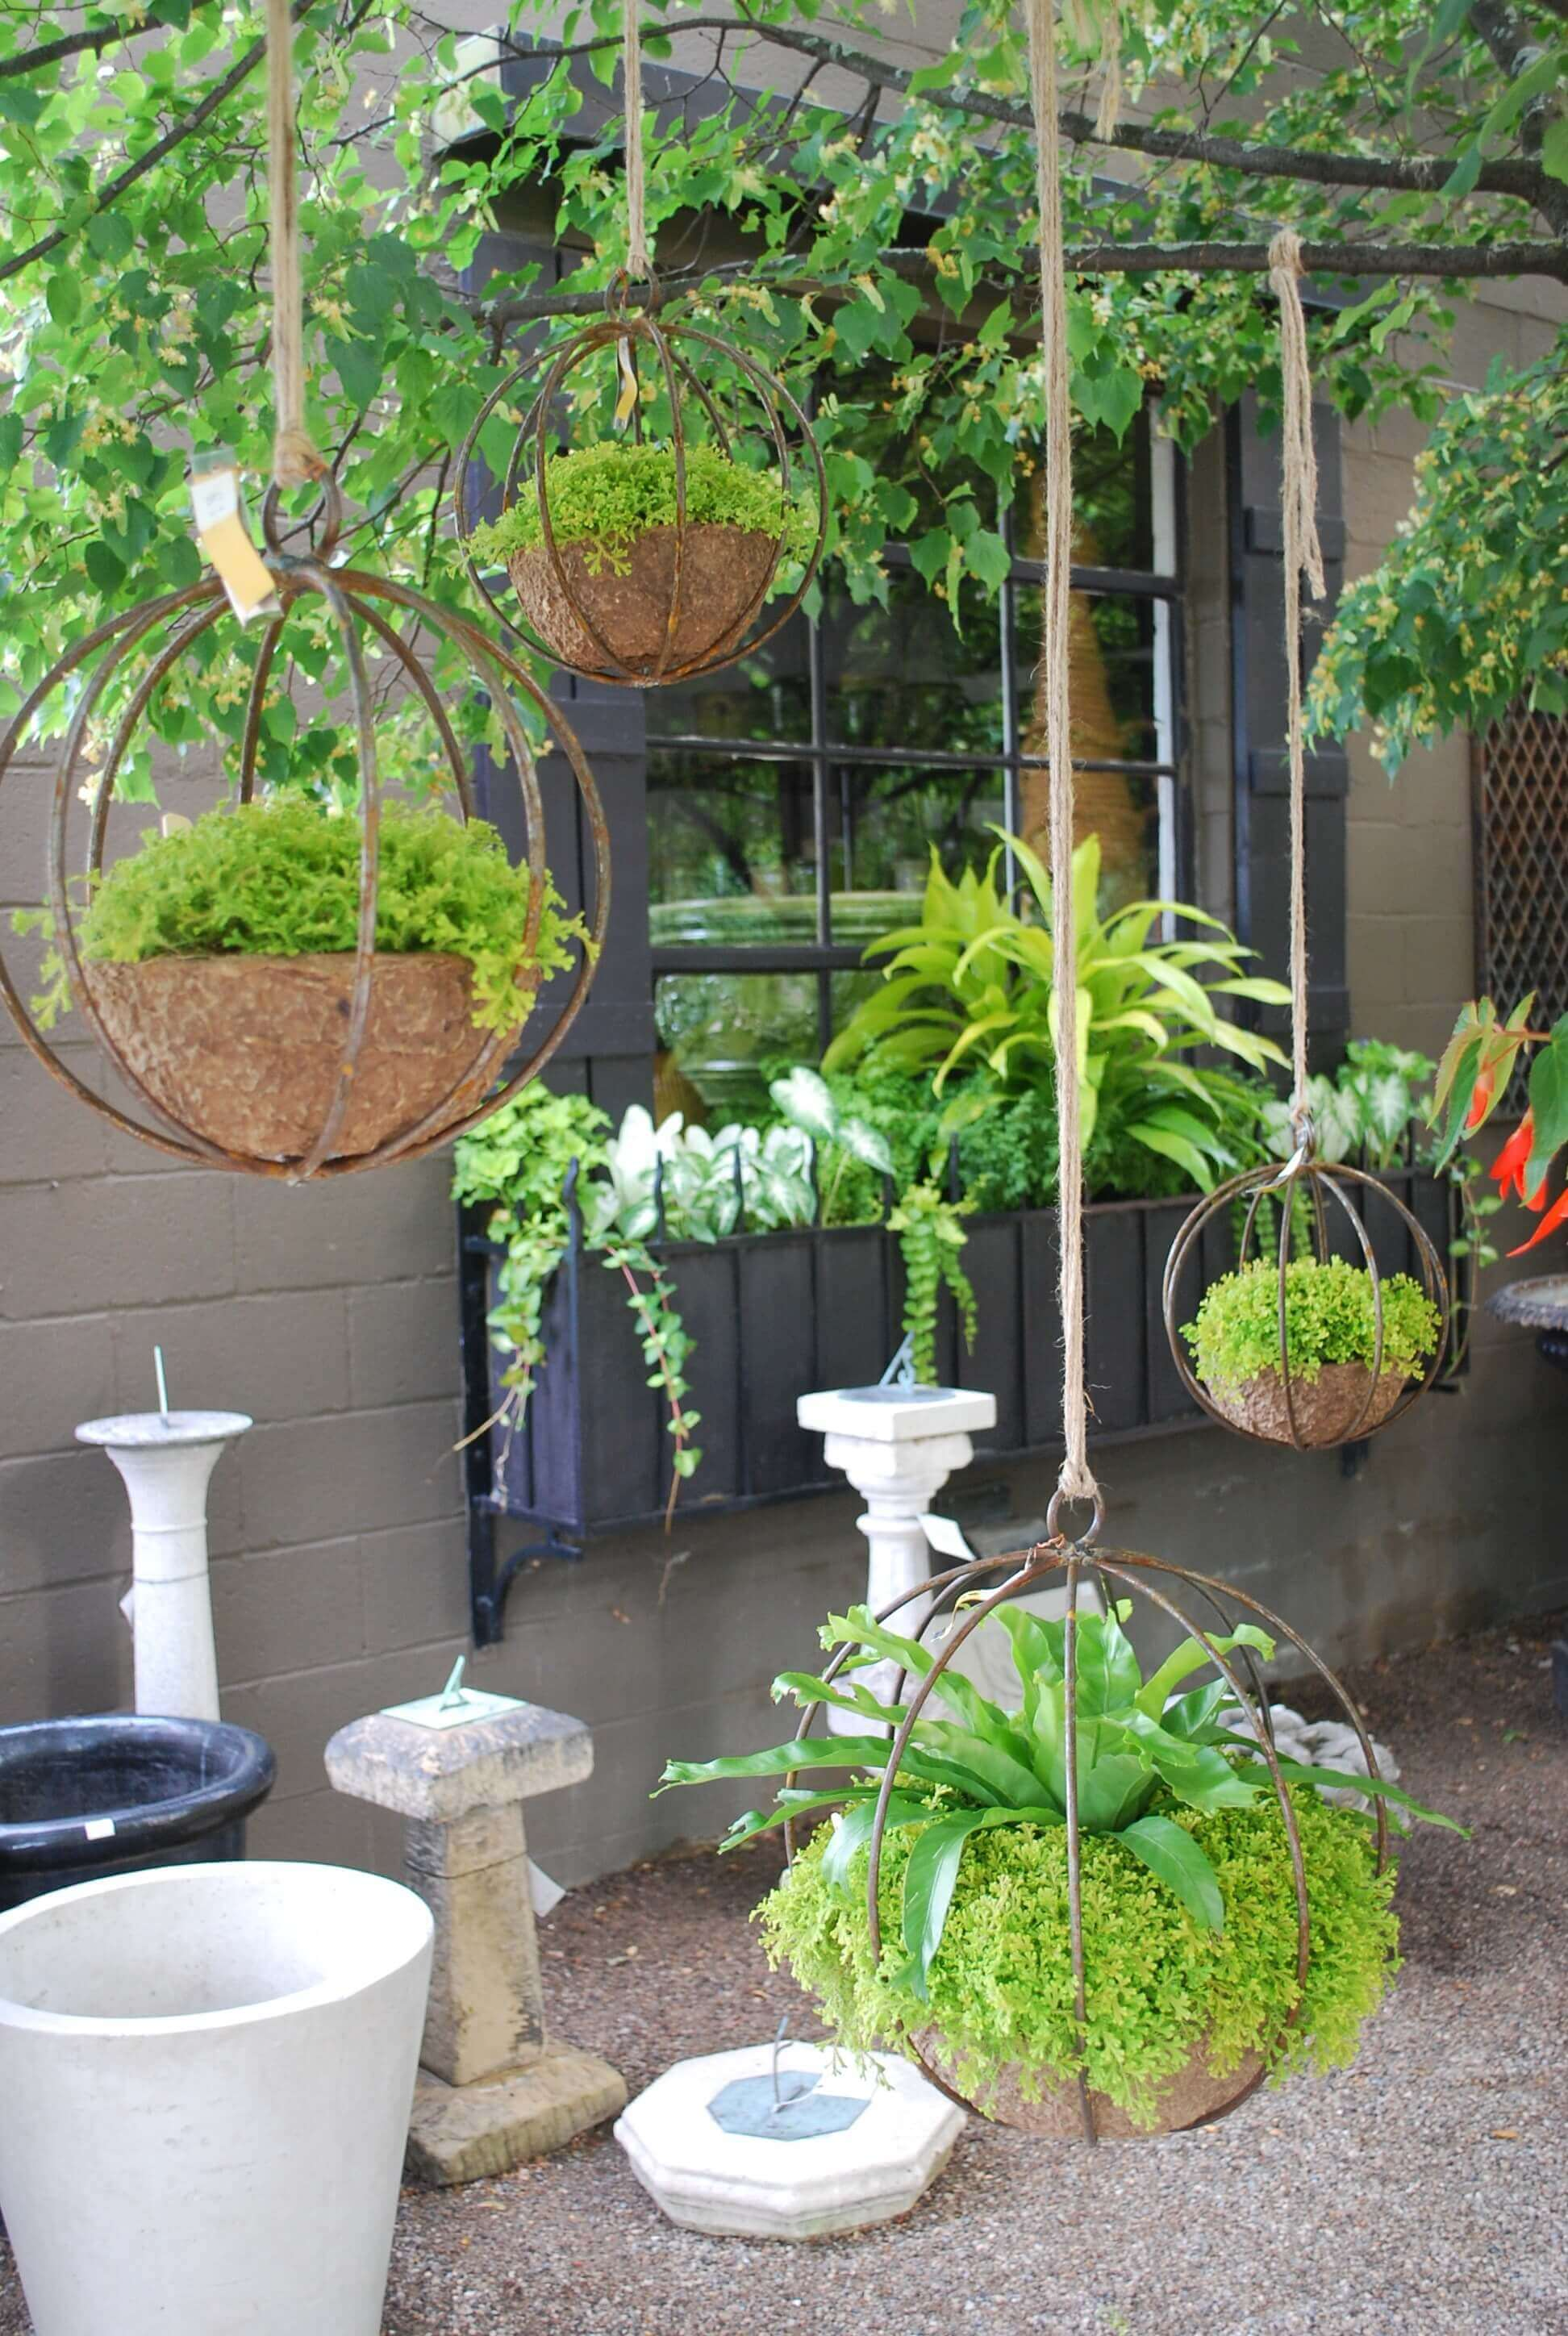 45 Best Outdoor Hanging Planter Ideas and Designs for 2020 on Hanging Plant Stand Ideas  id=61145